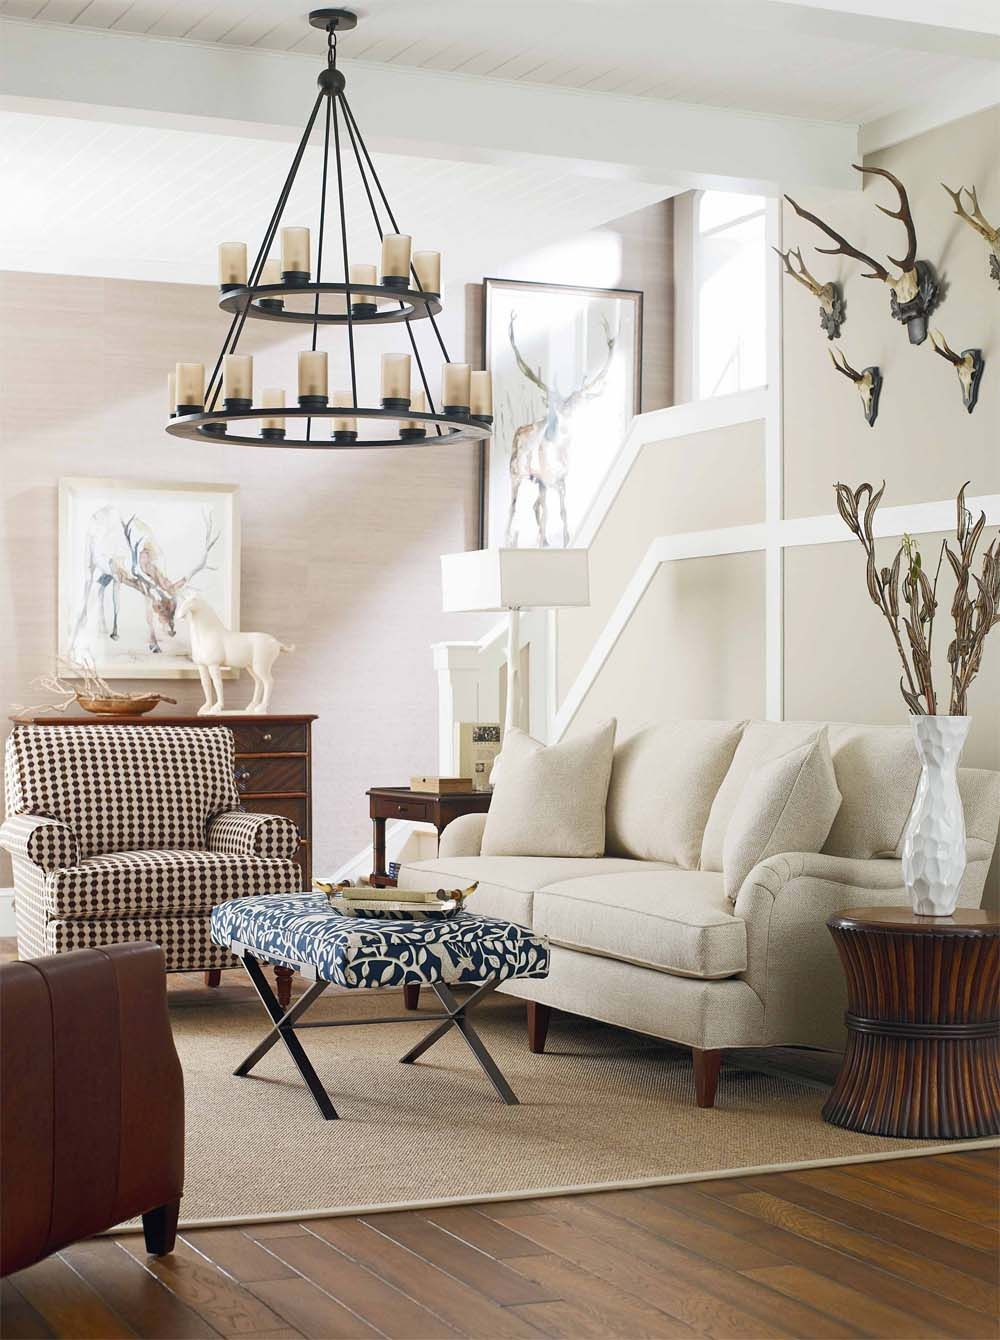 WV Design Team: Family friendly fabrics for furniture investments